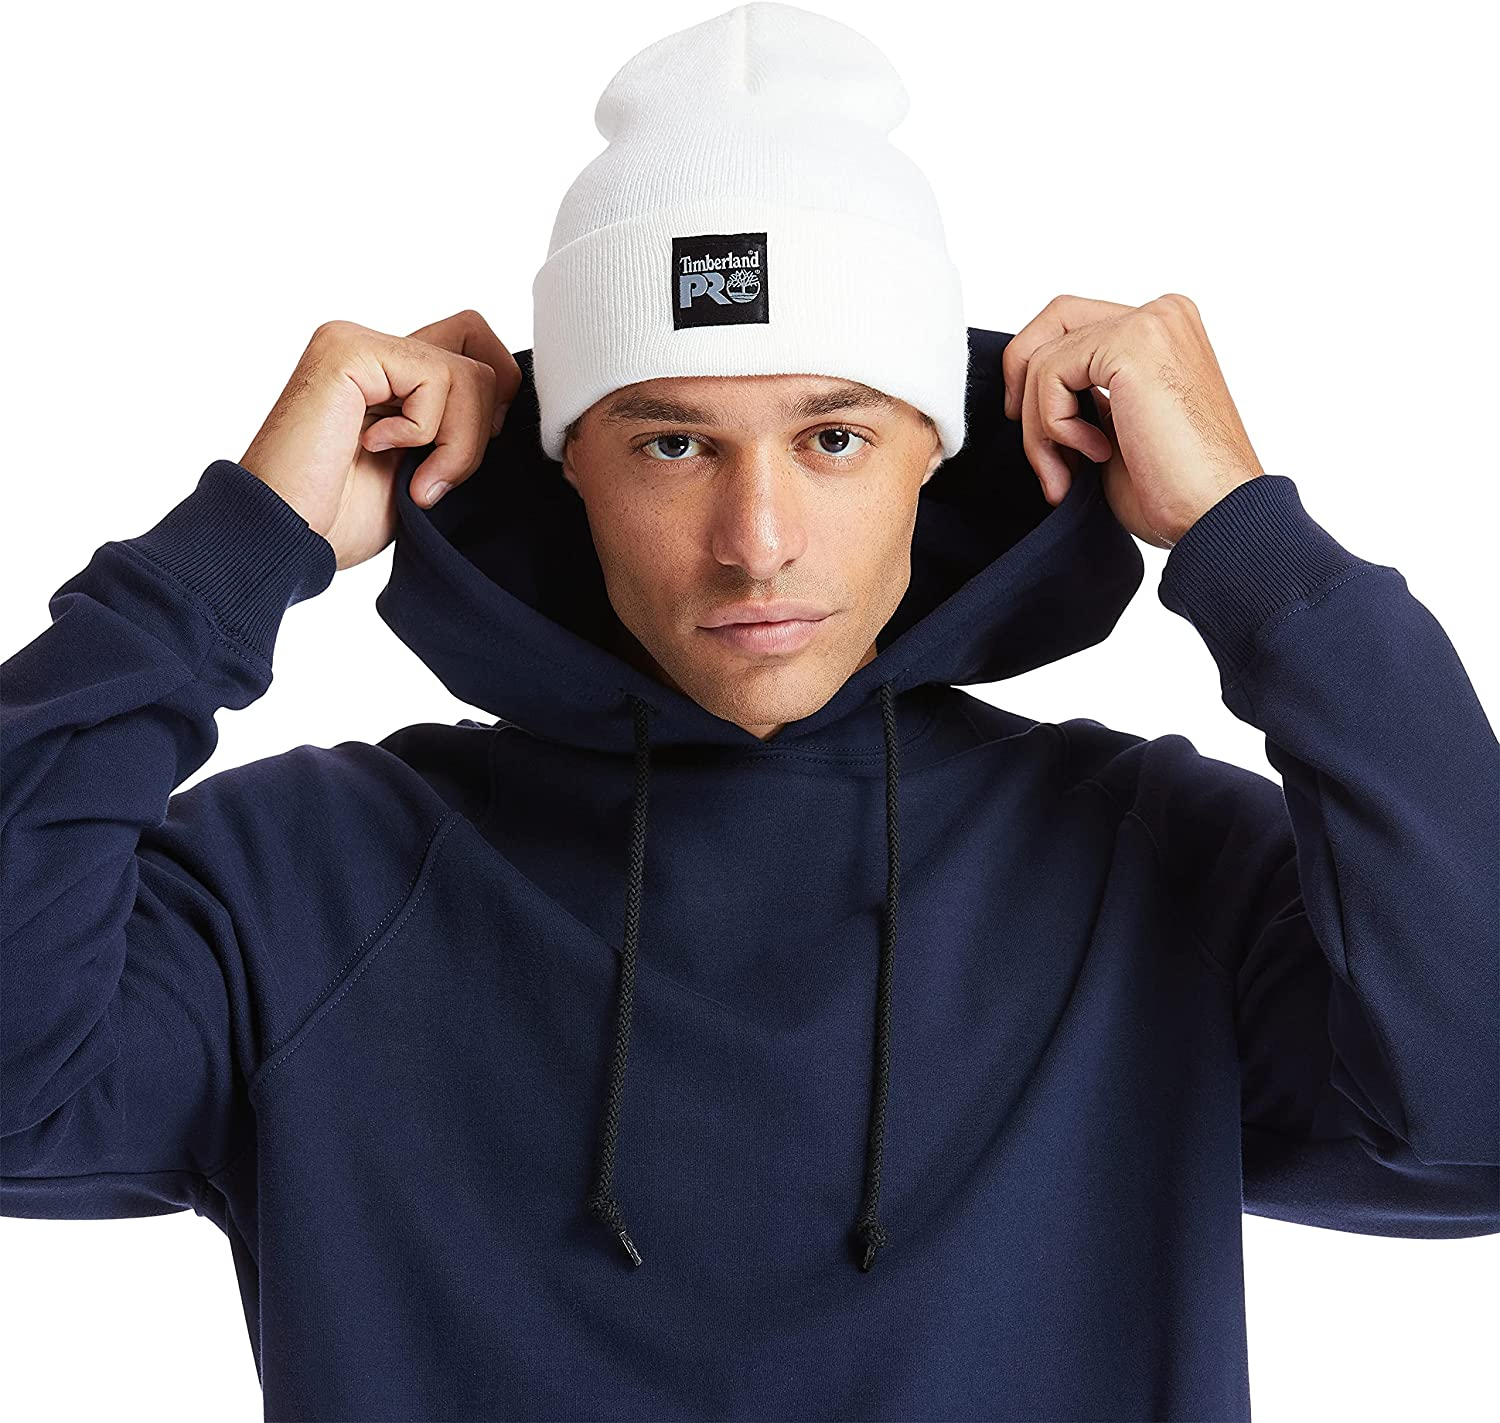 Timberland PRO unisex adult Watch Cap Beanie Hat, Off White, One Size US: Clothing